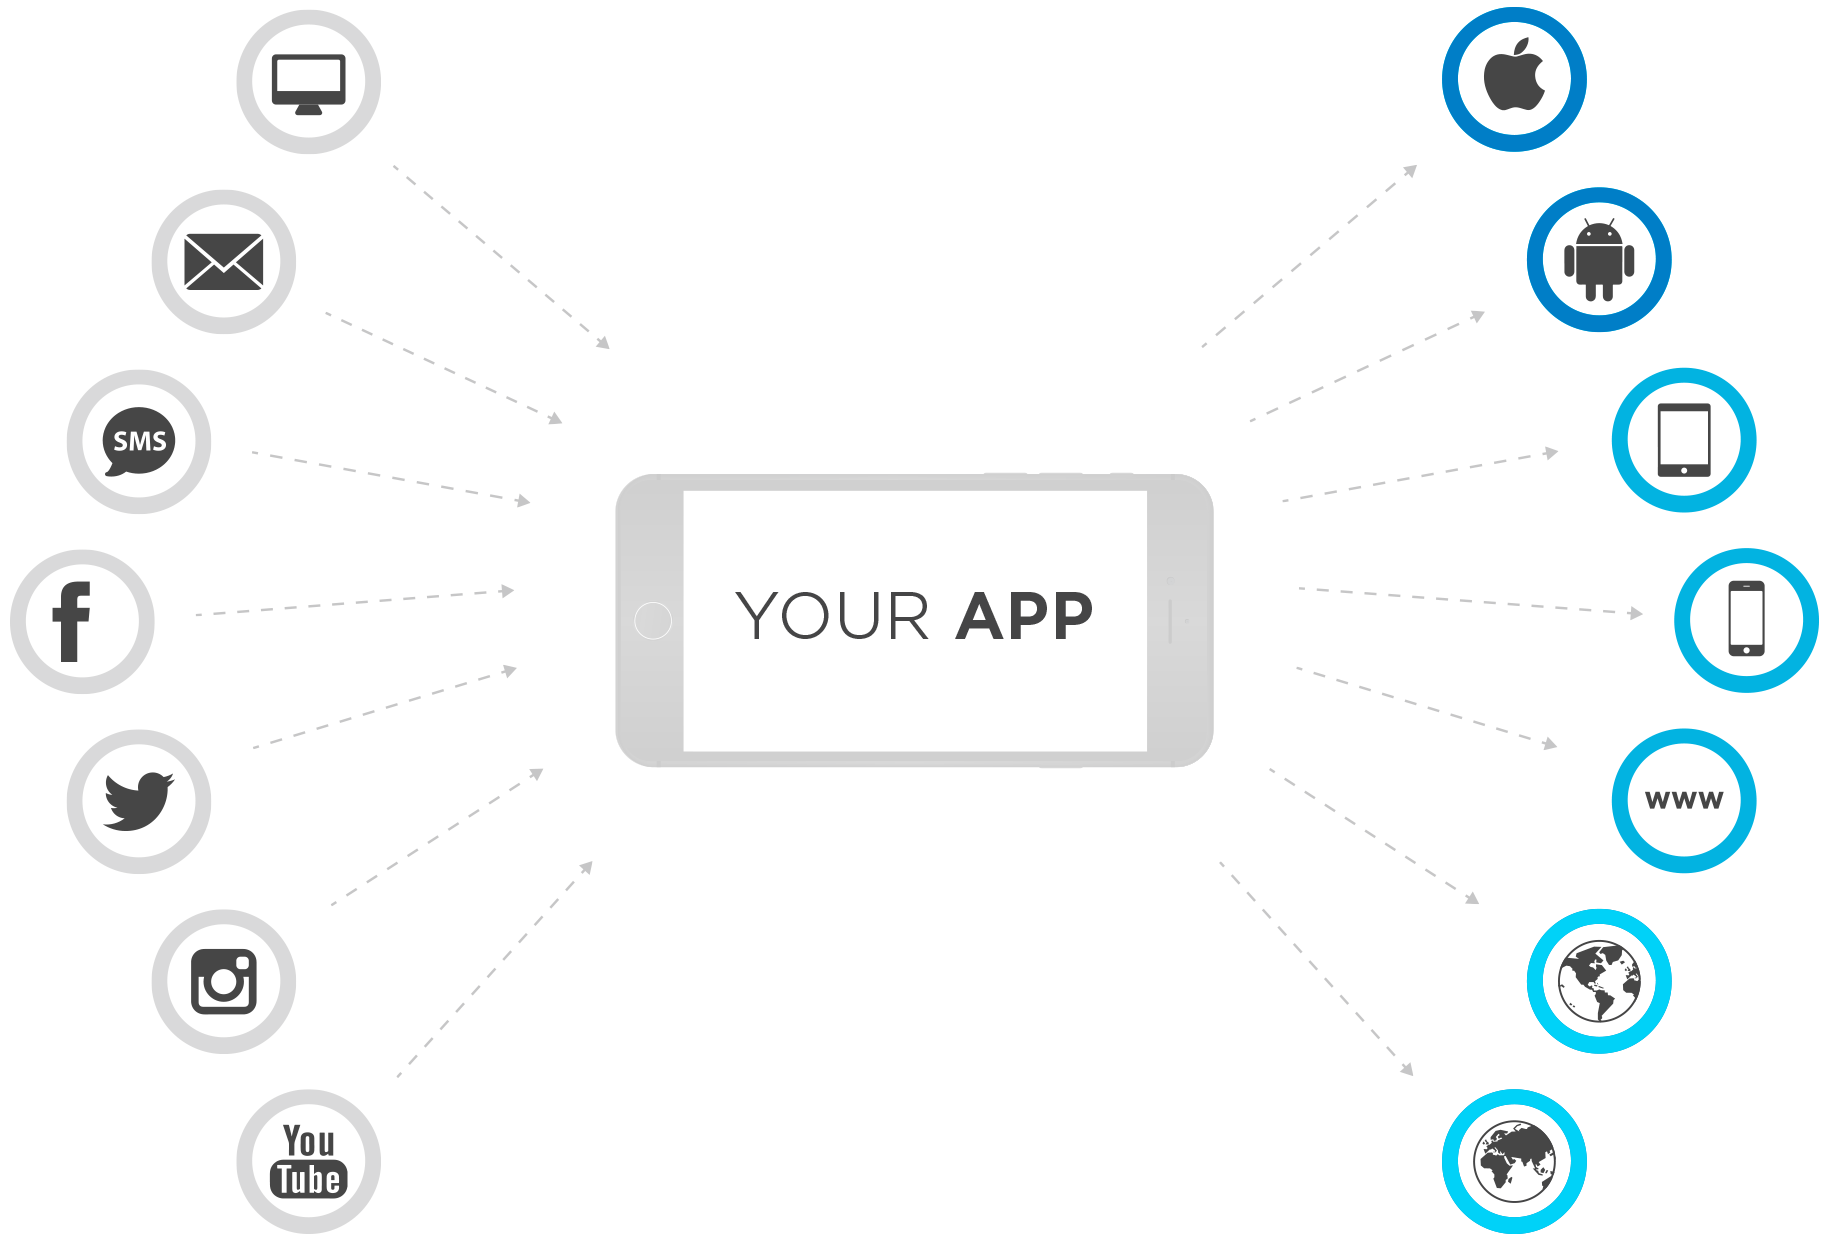 Promote your app through owned and paid channels